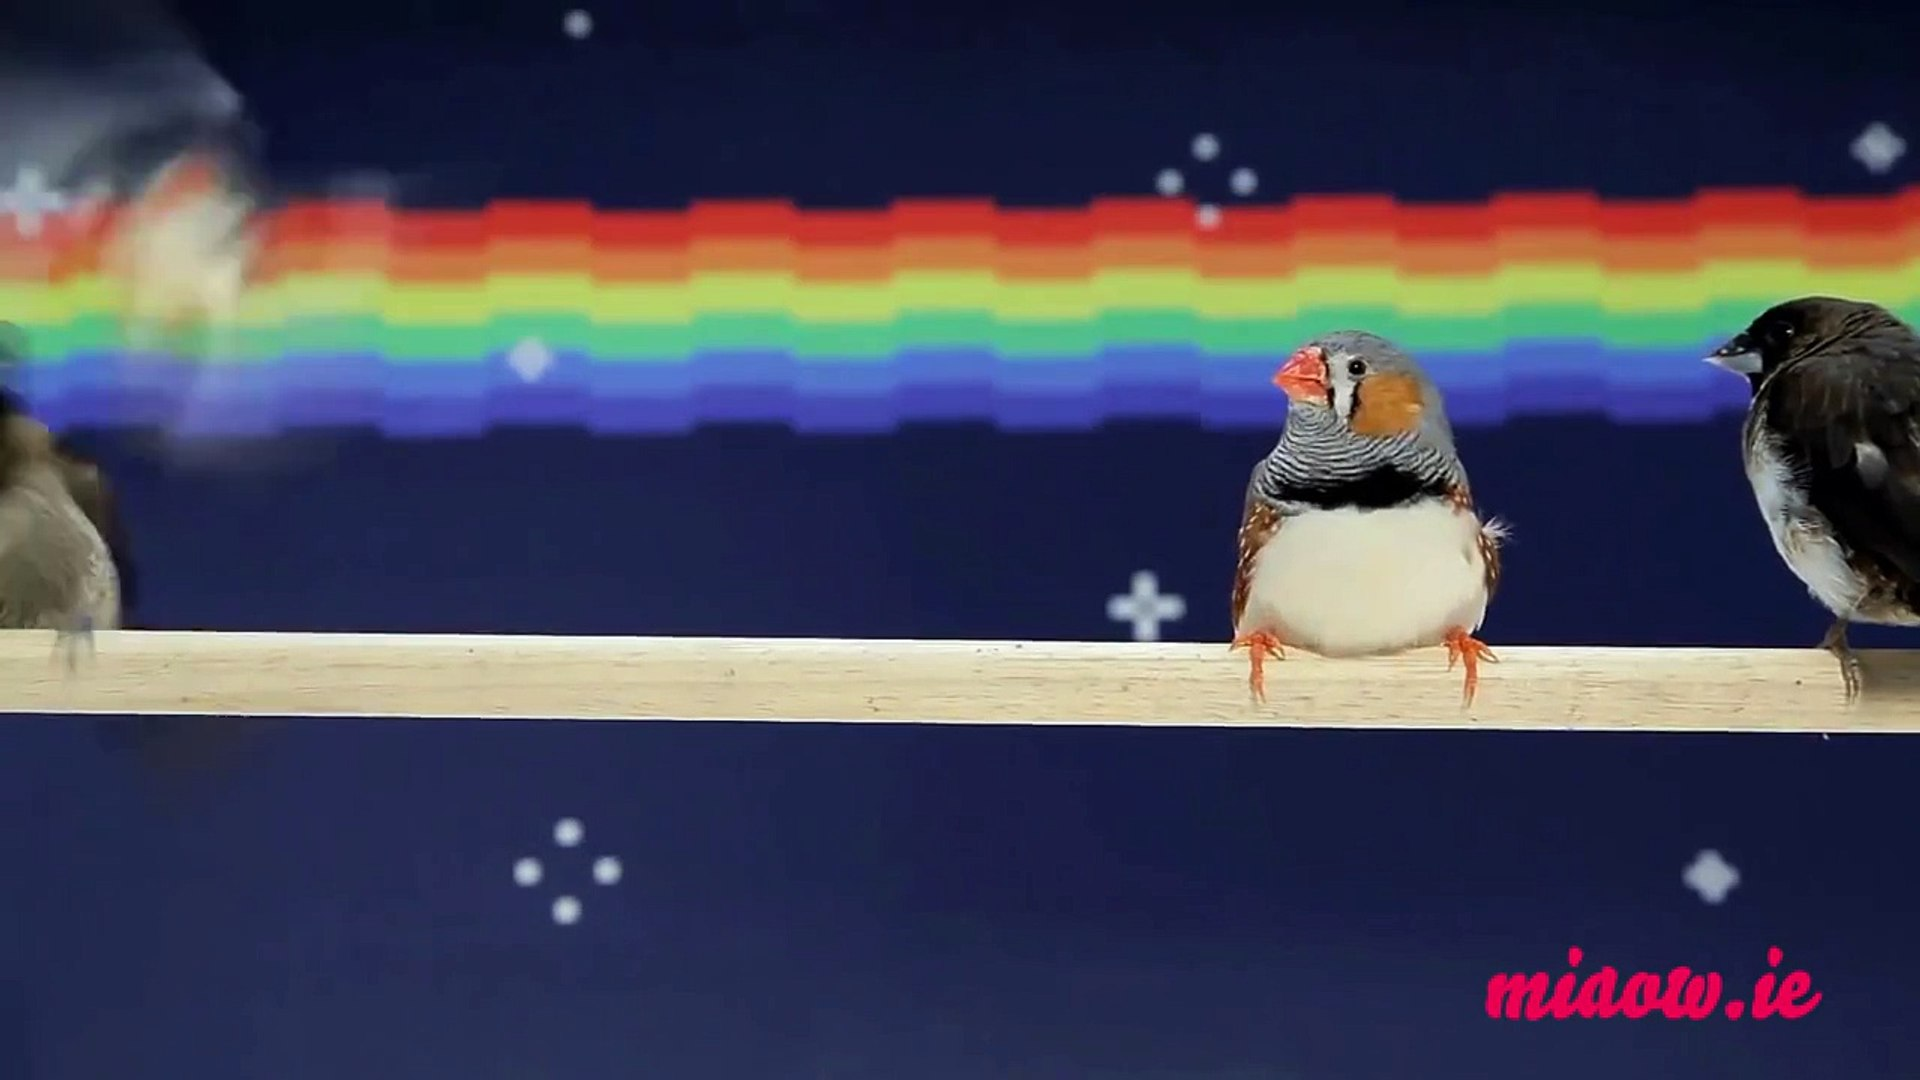 Telekat: video for cats to watch - birds from outer space!